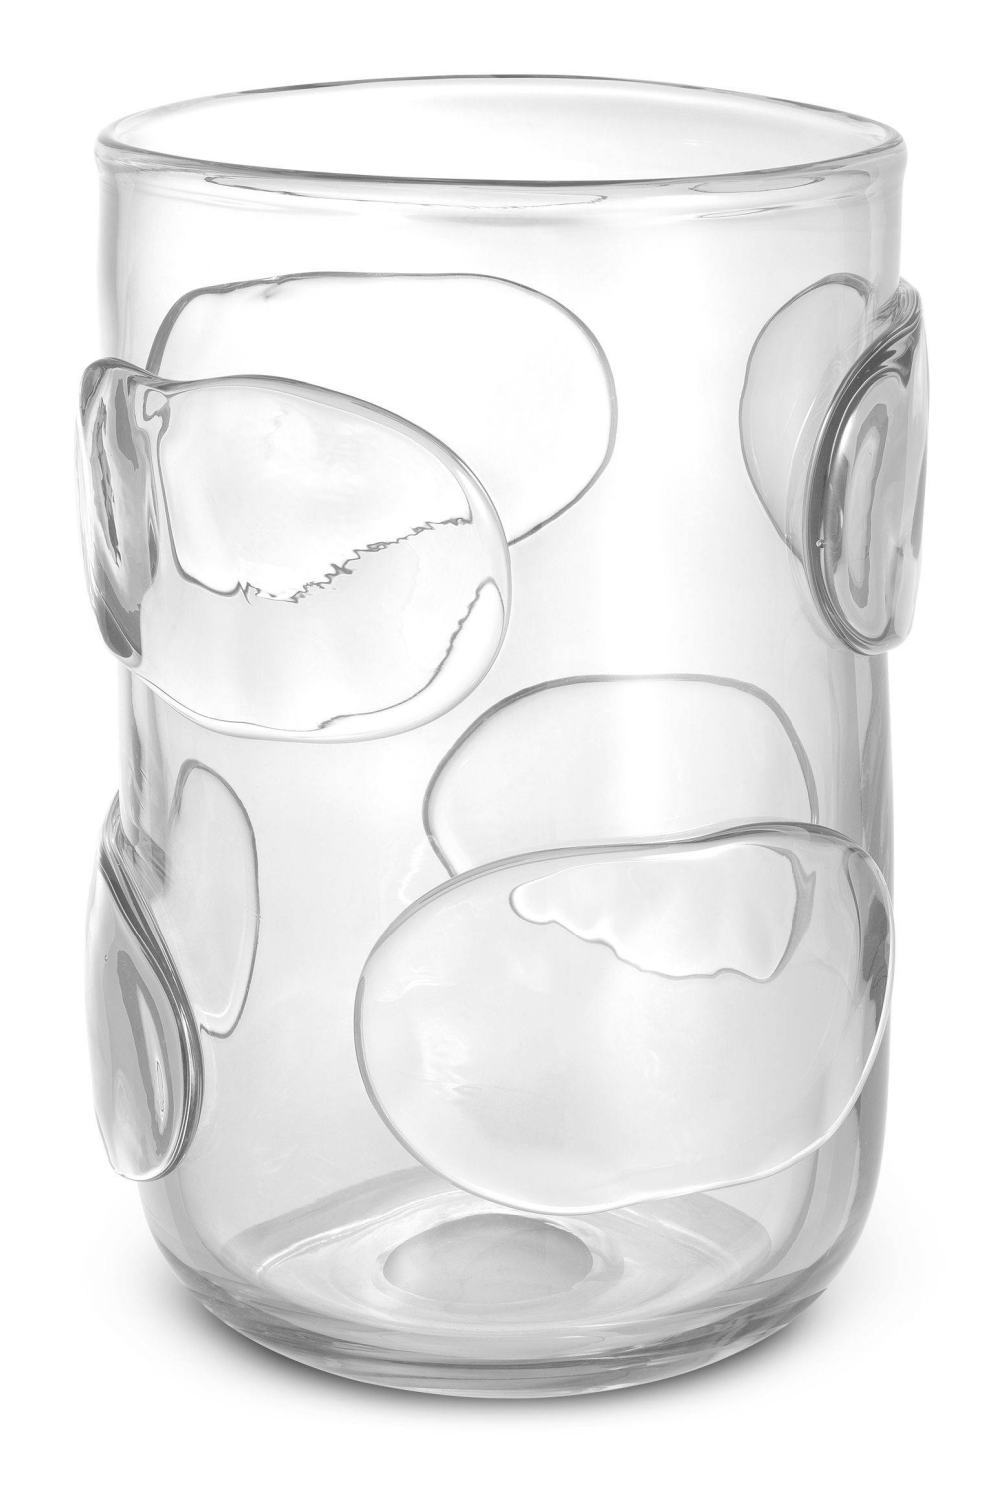 Clear Handblown Glass Vase | Eichholtz Valerio L